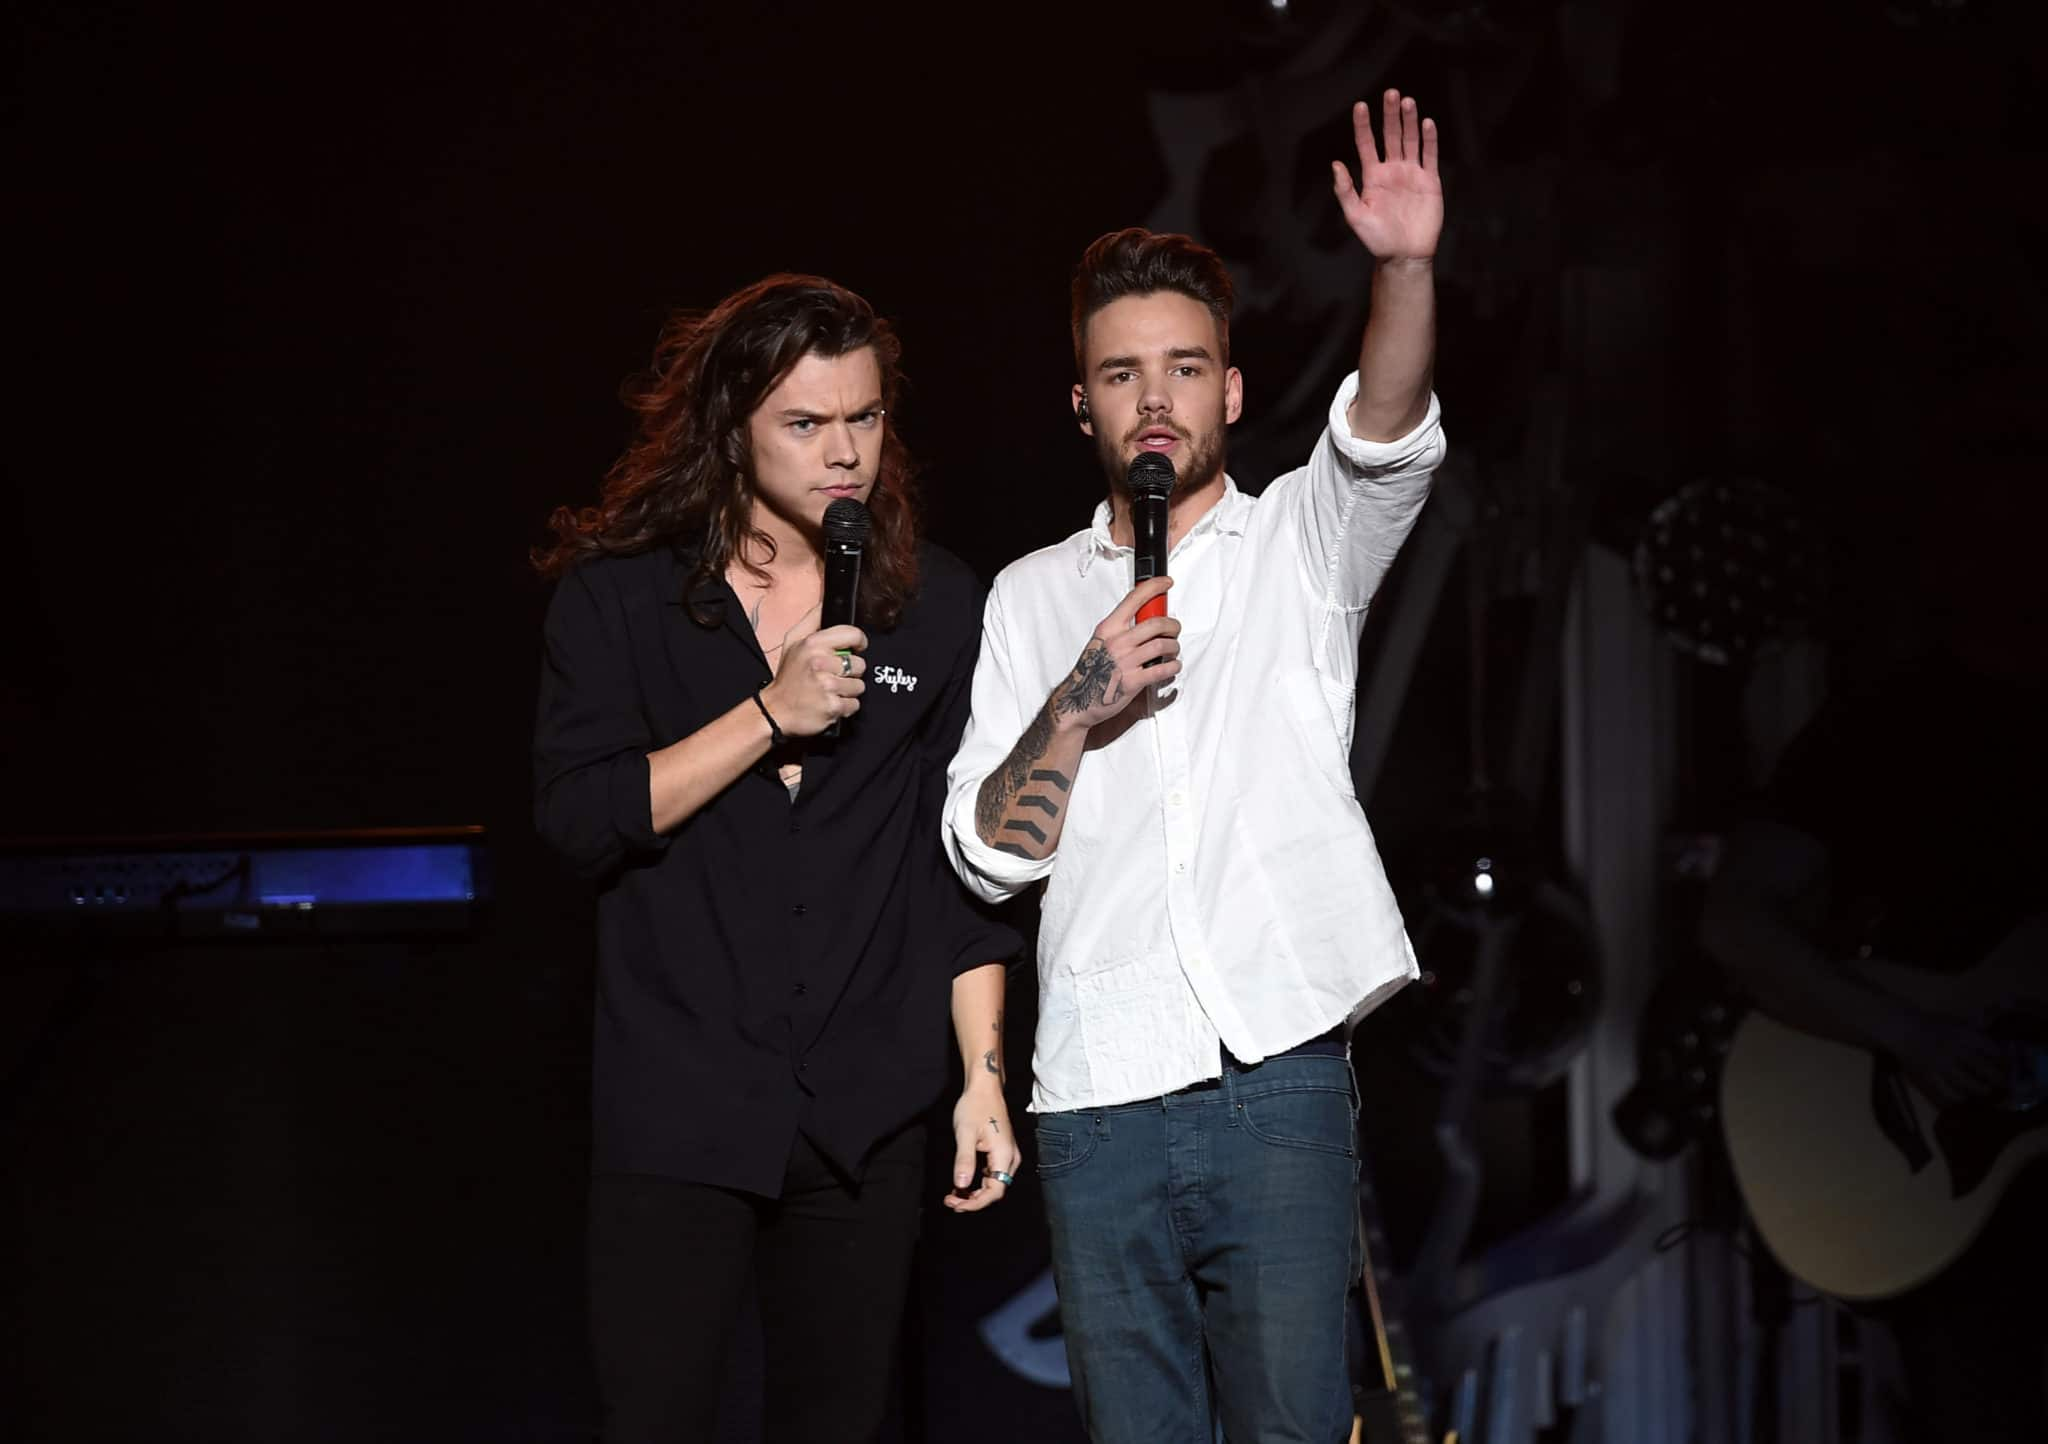 Harry Styles and Liam Payne of One Direction perform in 2015